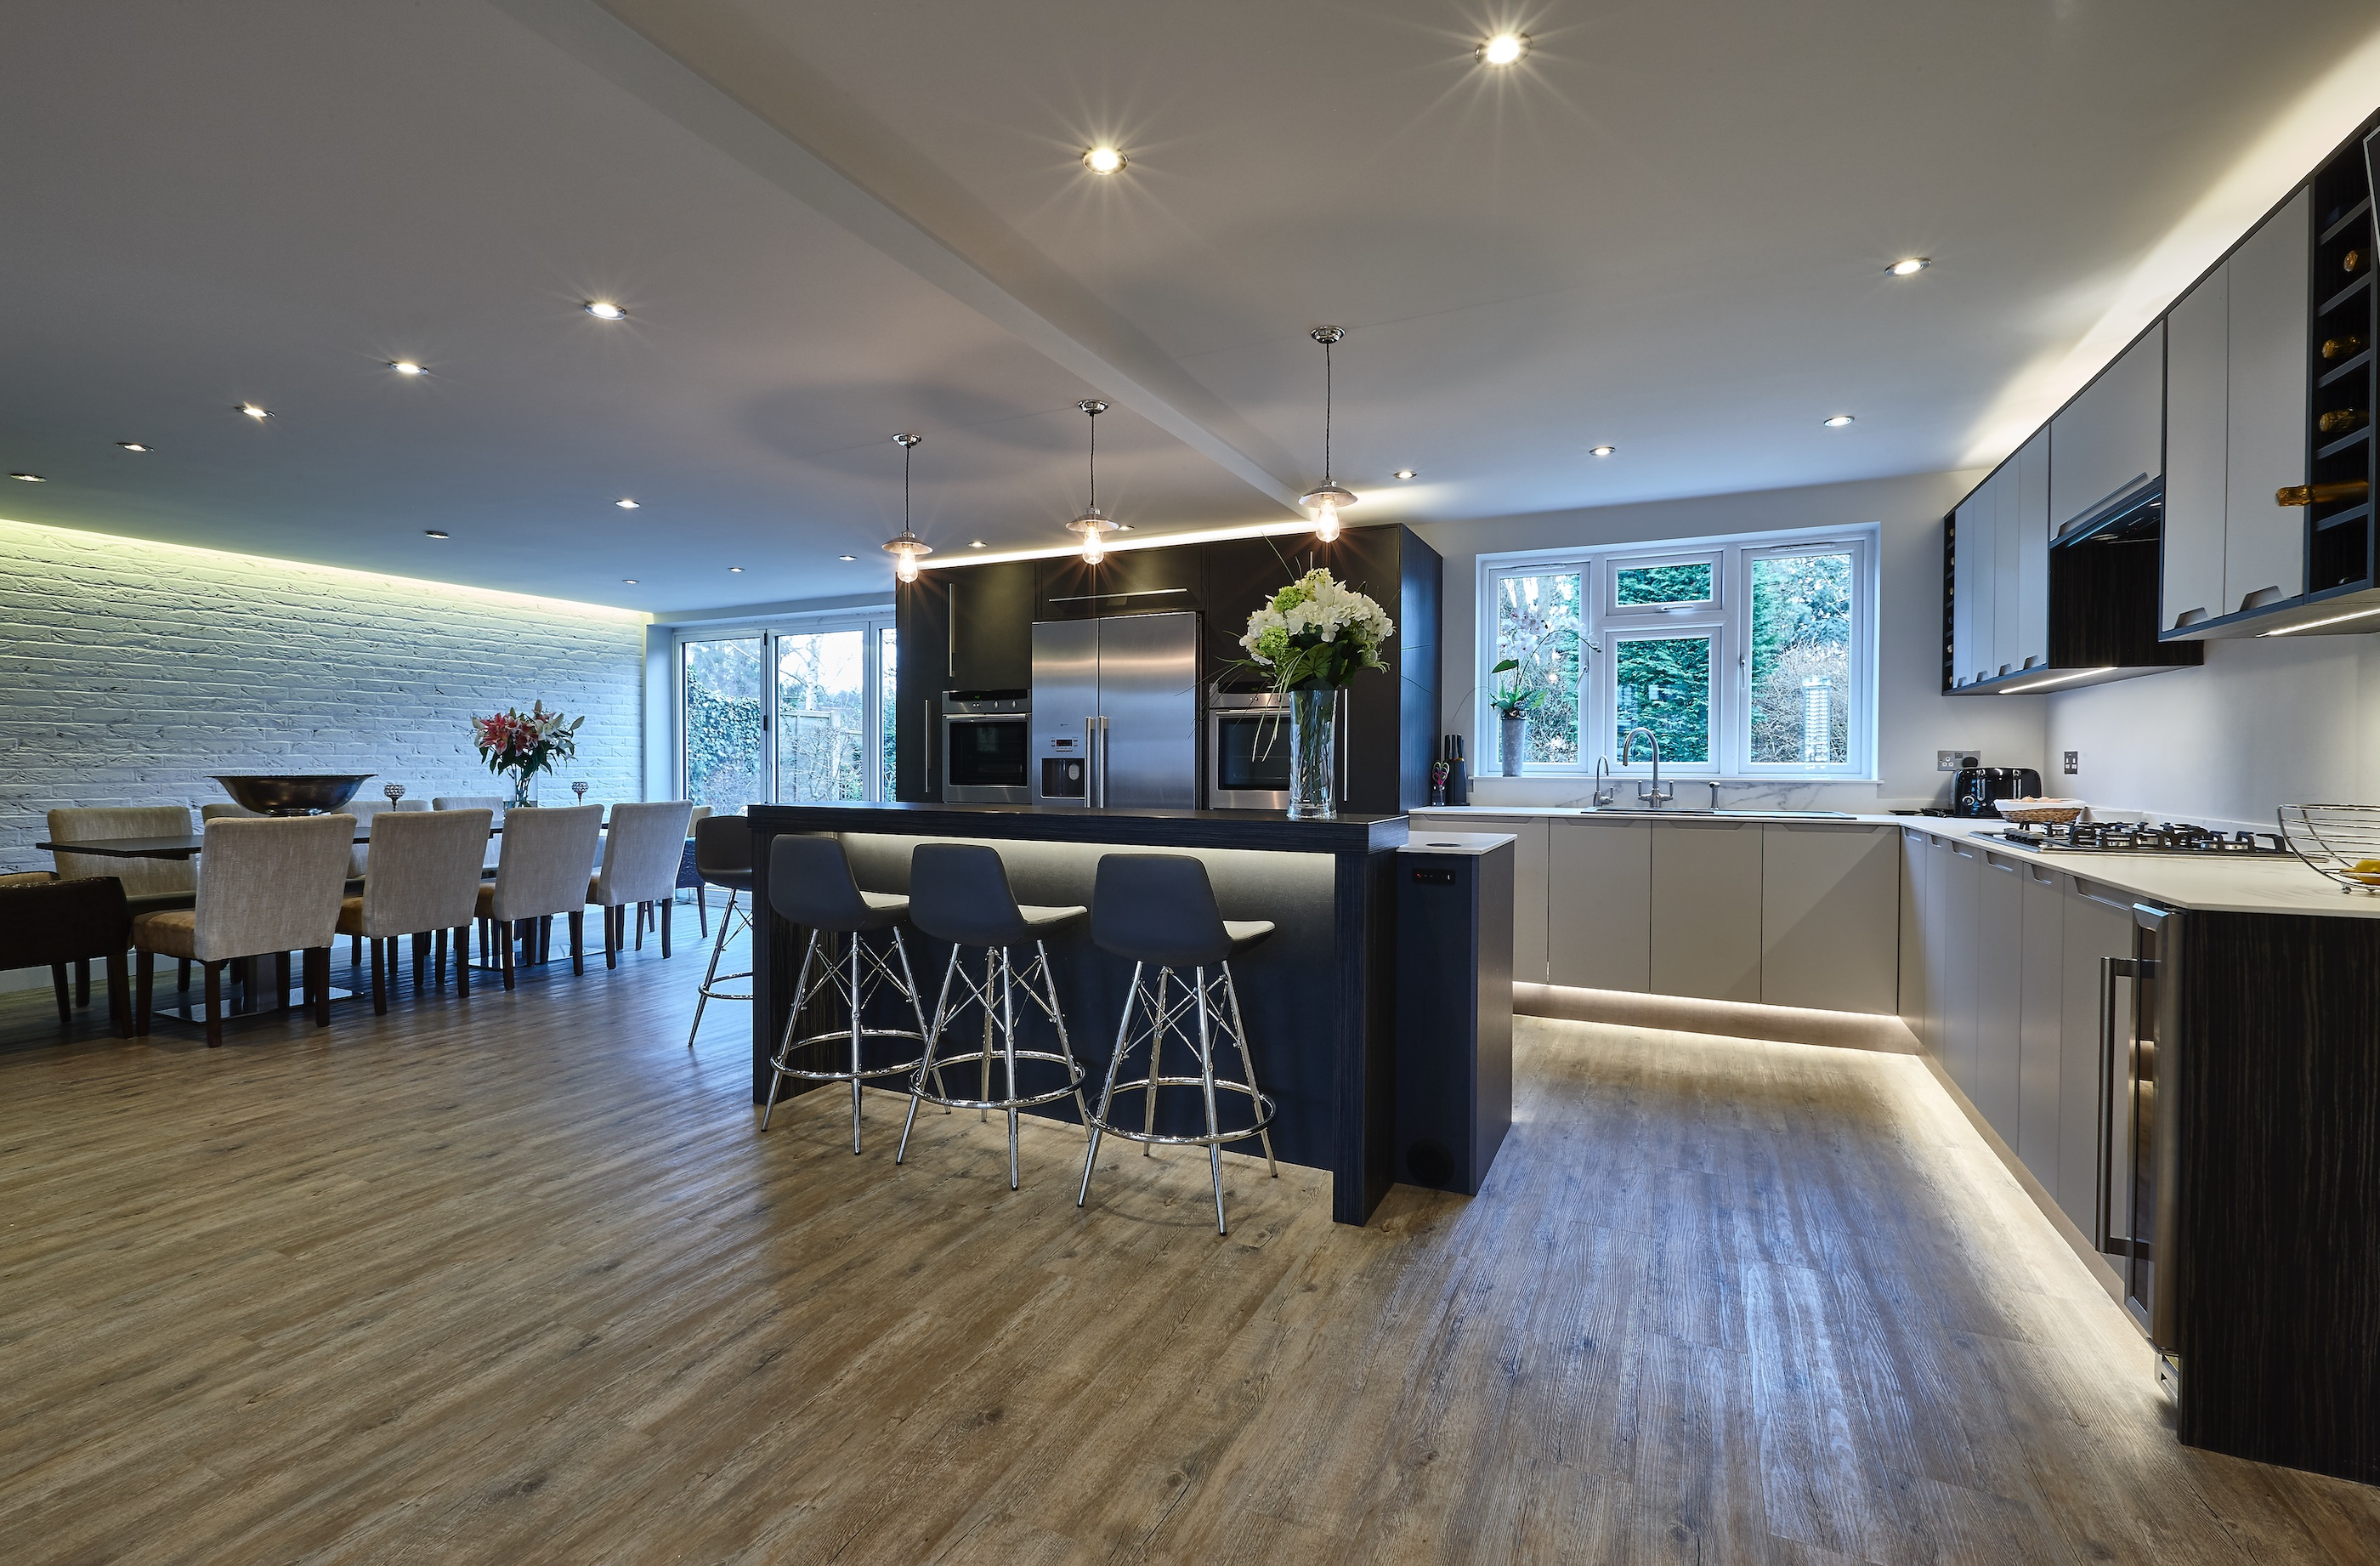 Bespoke contemporary CK kitchen with leather and grey cabinets and a large walnut wood island and stainless steel appliances.